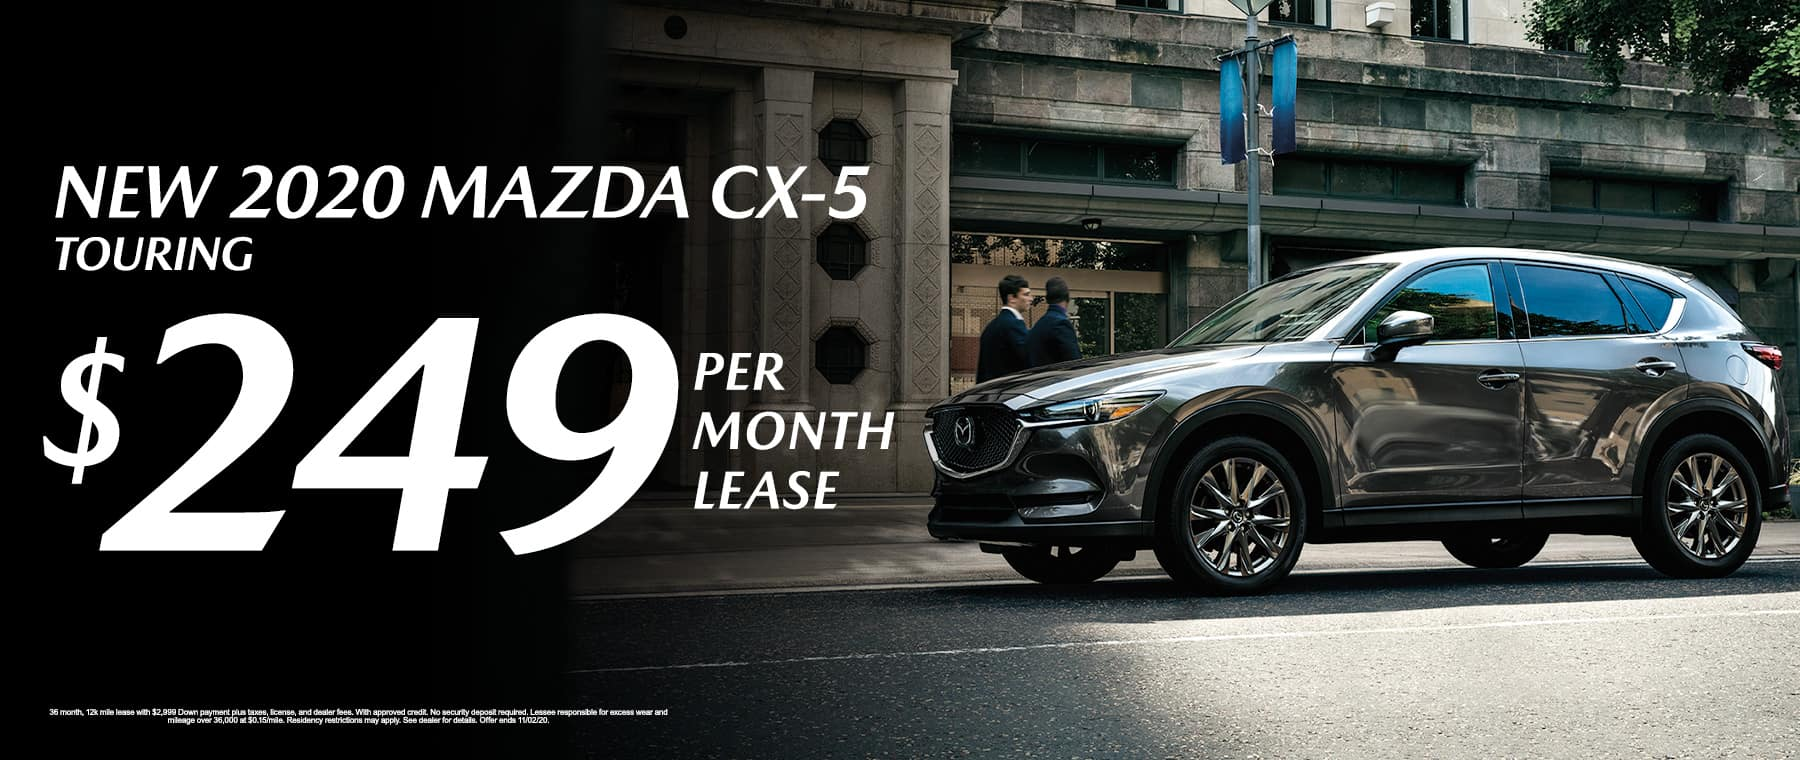 Lease a New 2020 Mazda CX-5 Touring for $249/mo at Mazda of Fort Walton Beach